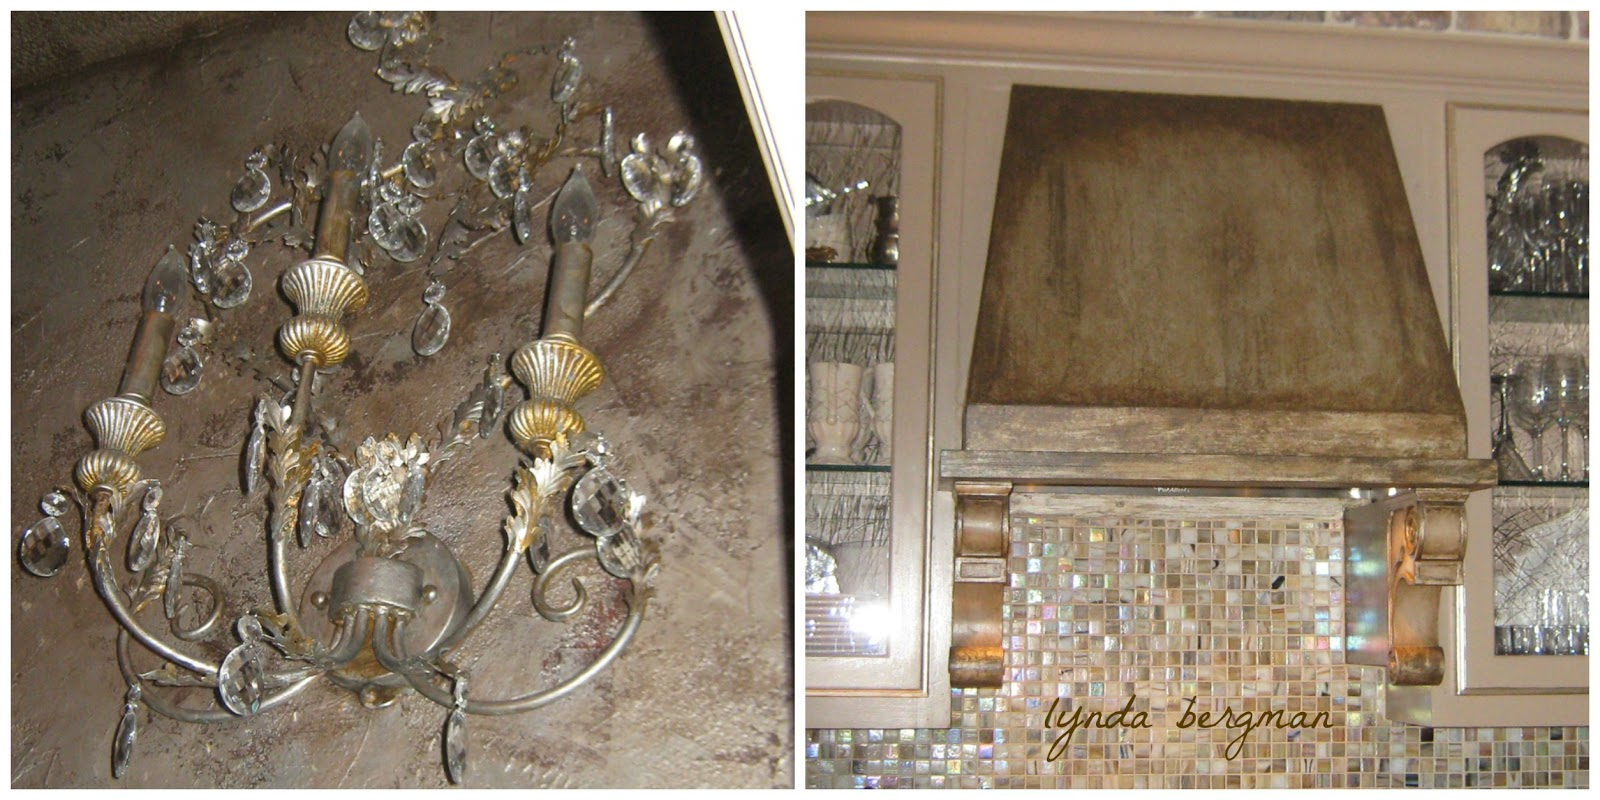 Lynda Bergman Decorative Artisan Painting Special Faux Finishes For Aguie